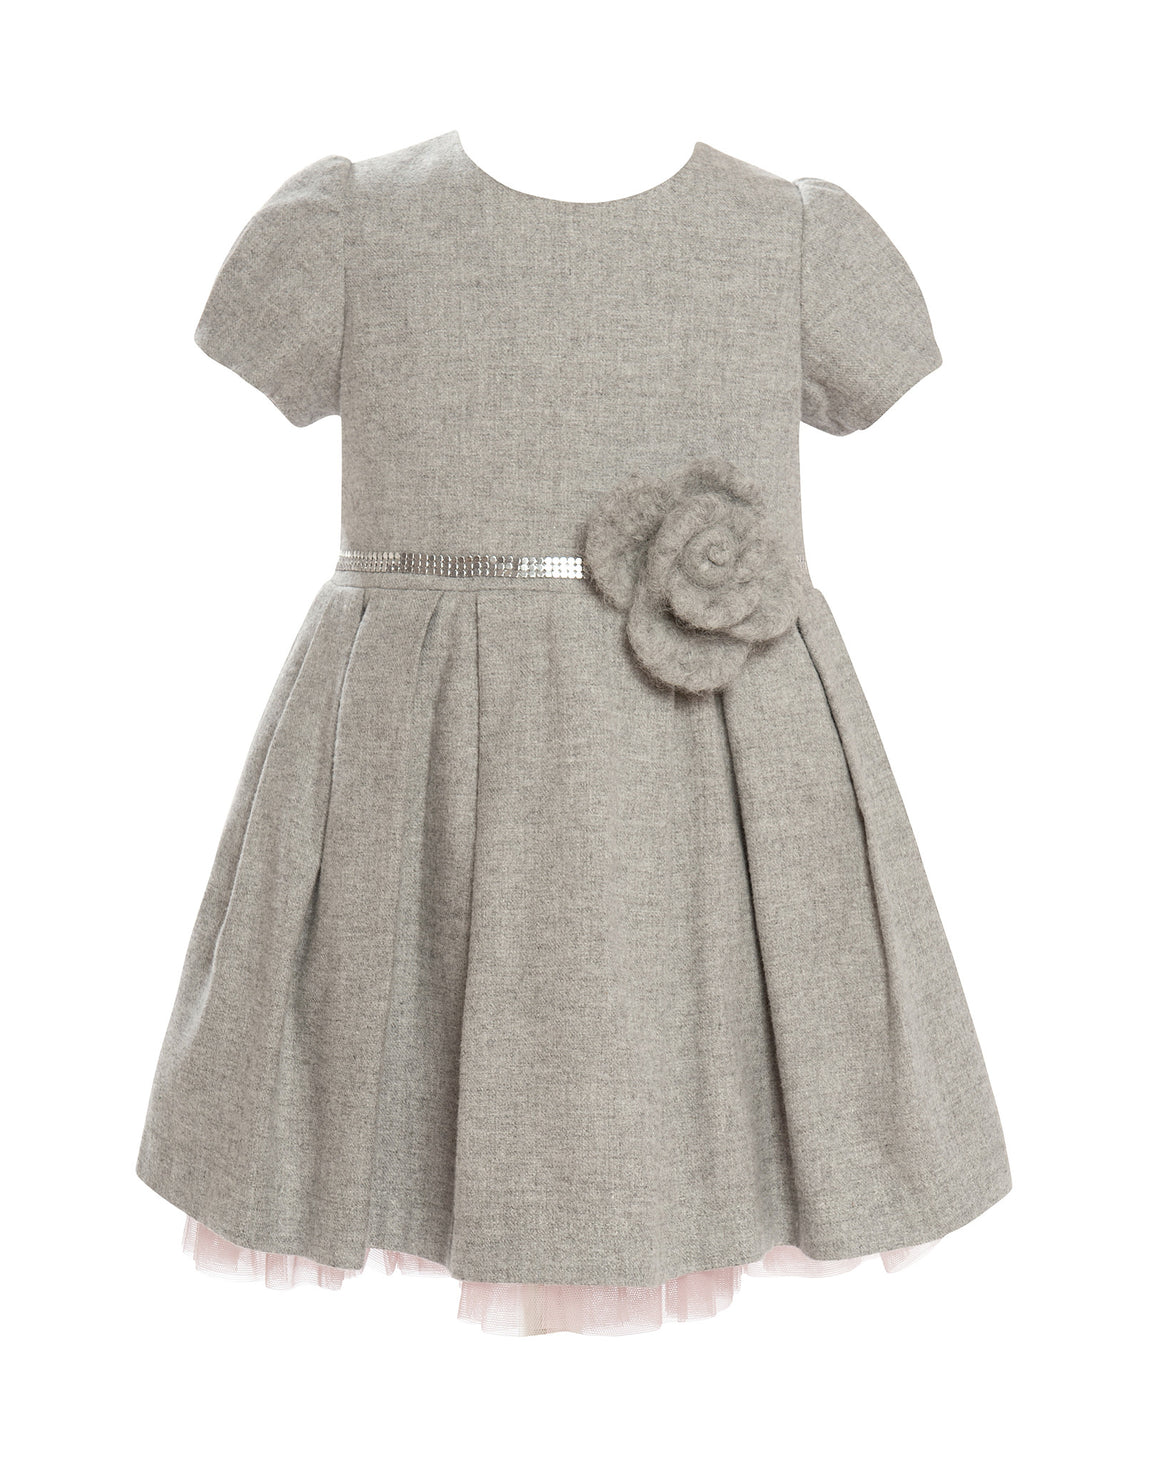 Balloon Chic - Girls Soft Grey Wool Party Dress | Party Dresses | Bon Bon Tresor